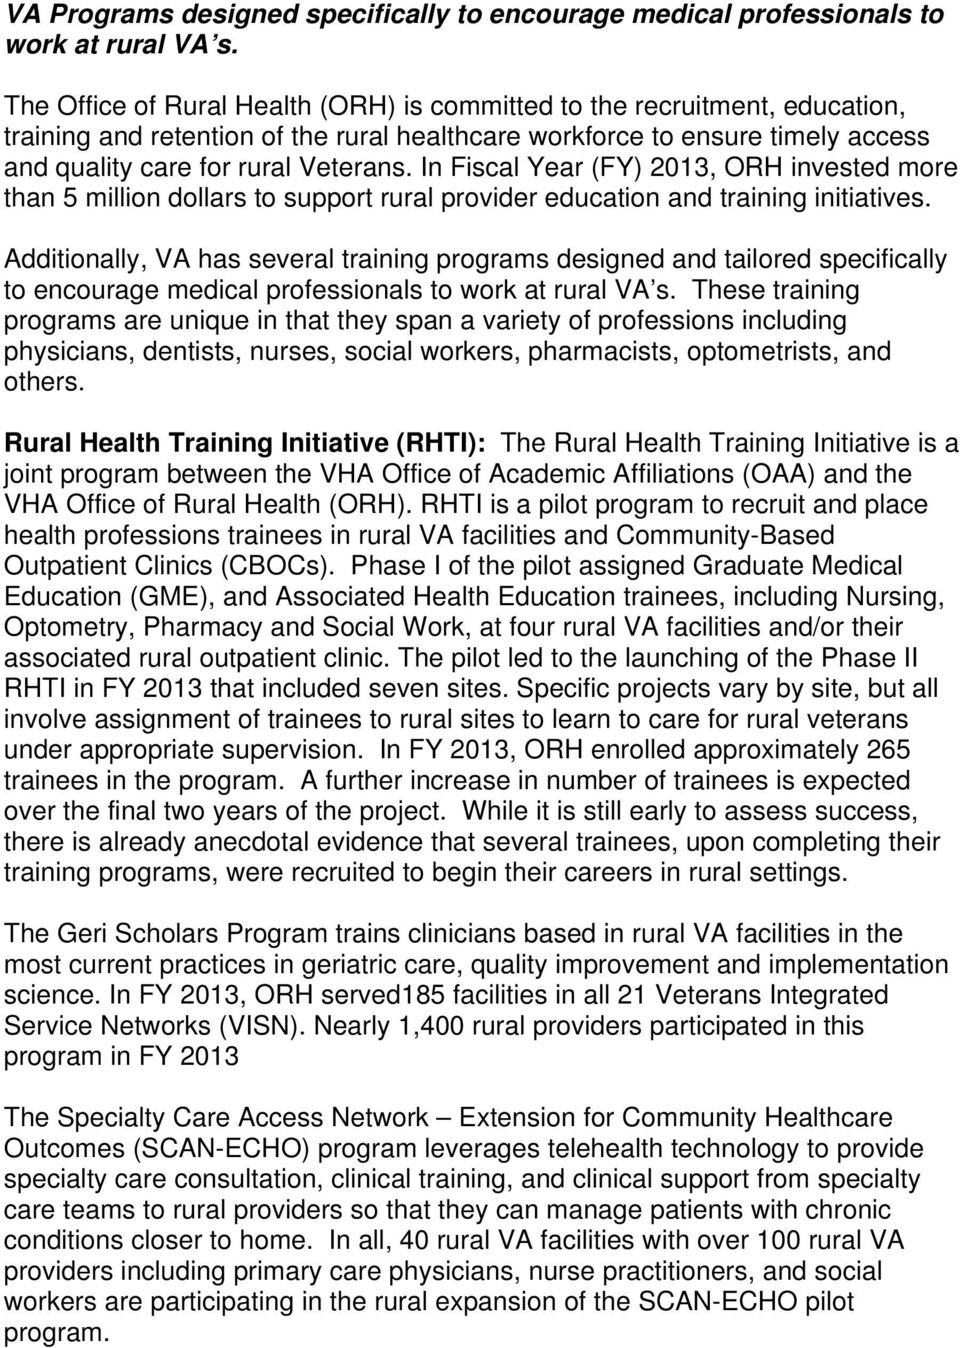 In Fiscal Year (FY) 2013, ORH invested more than 5 million dollars to support rural provider education and training initiatives.